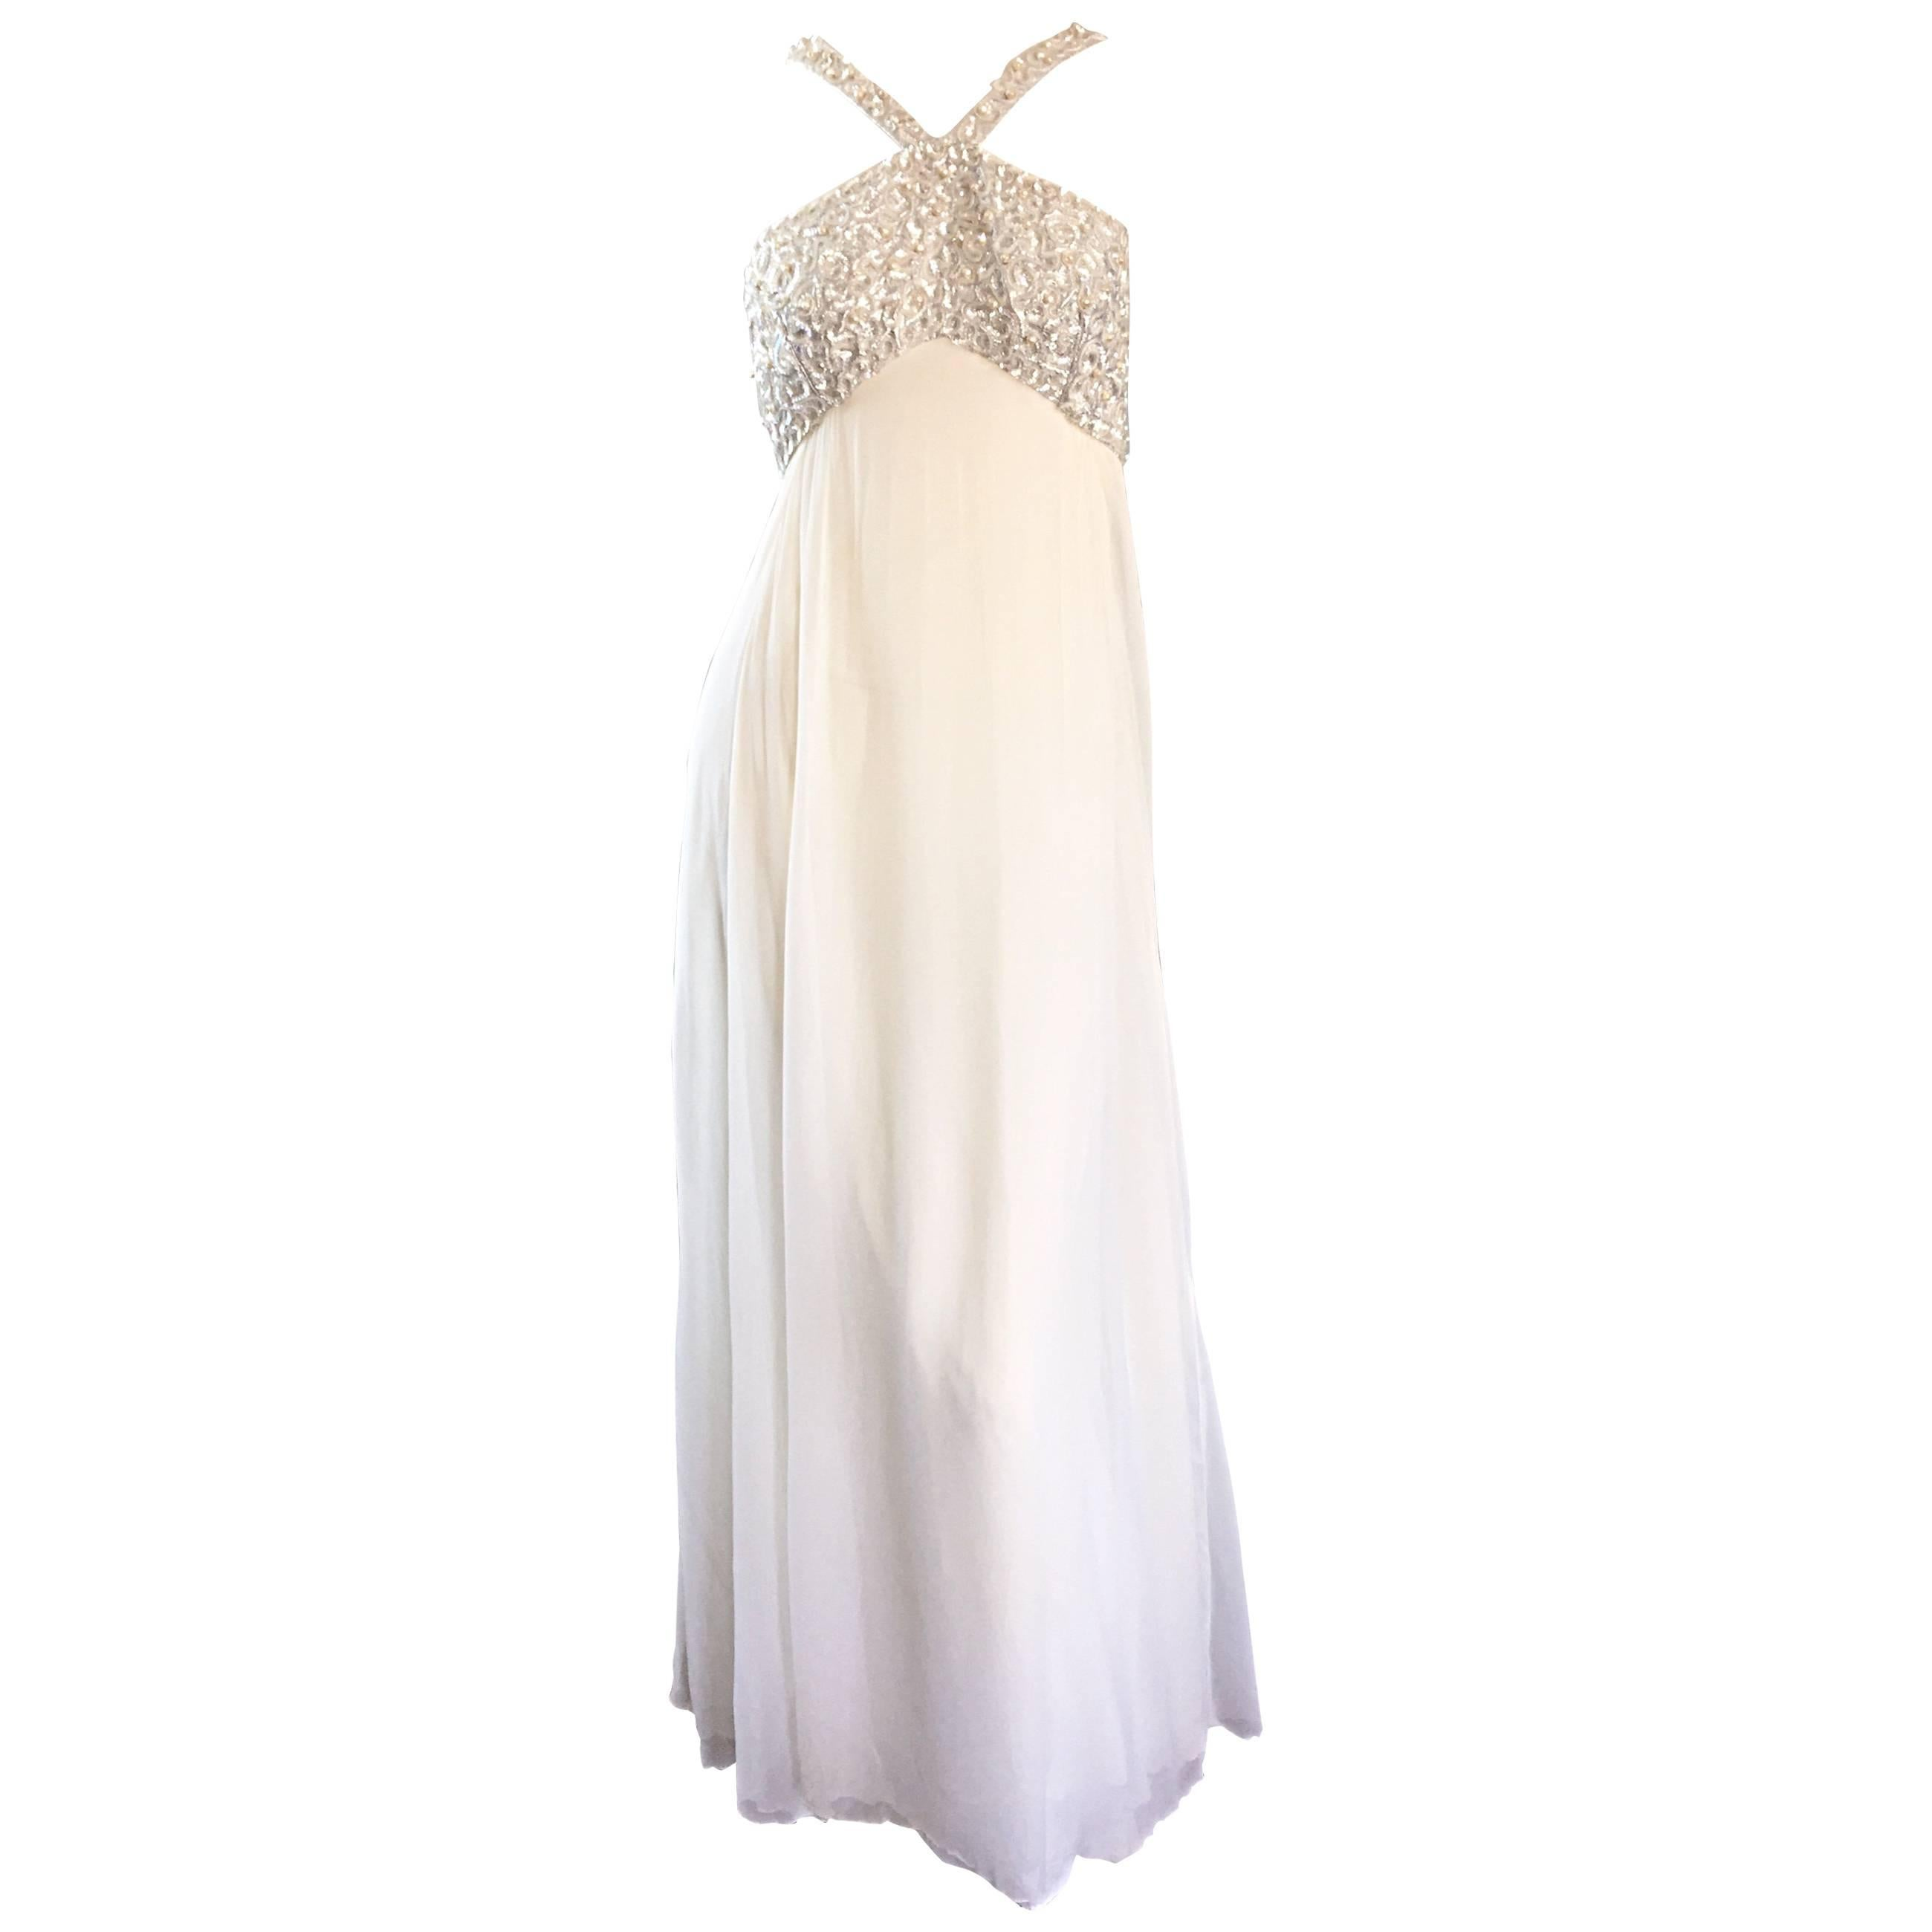 Ethereal Emma Domb 1960s White Chiffon Sequins + Pearls 60s Empire Waist Gown